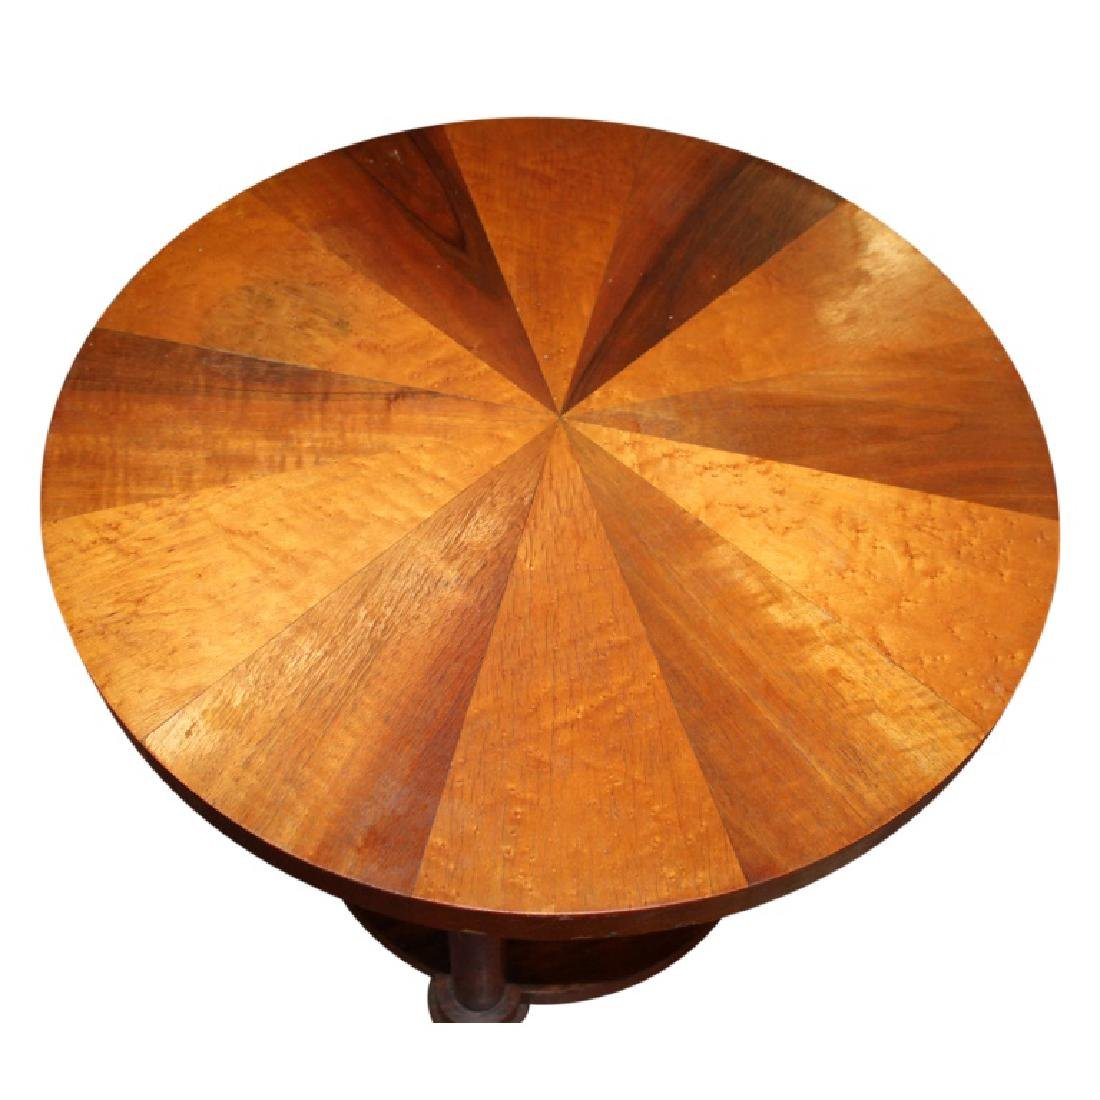 Modern Sunburst Biedermeier End Table - 3